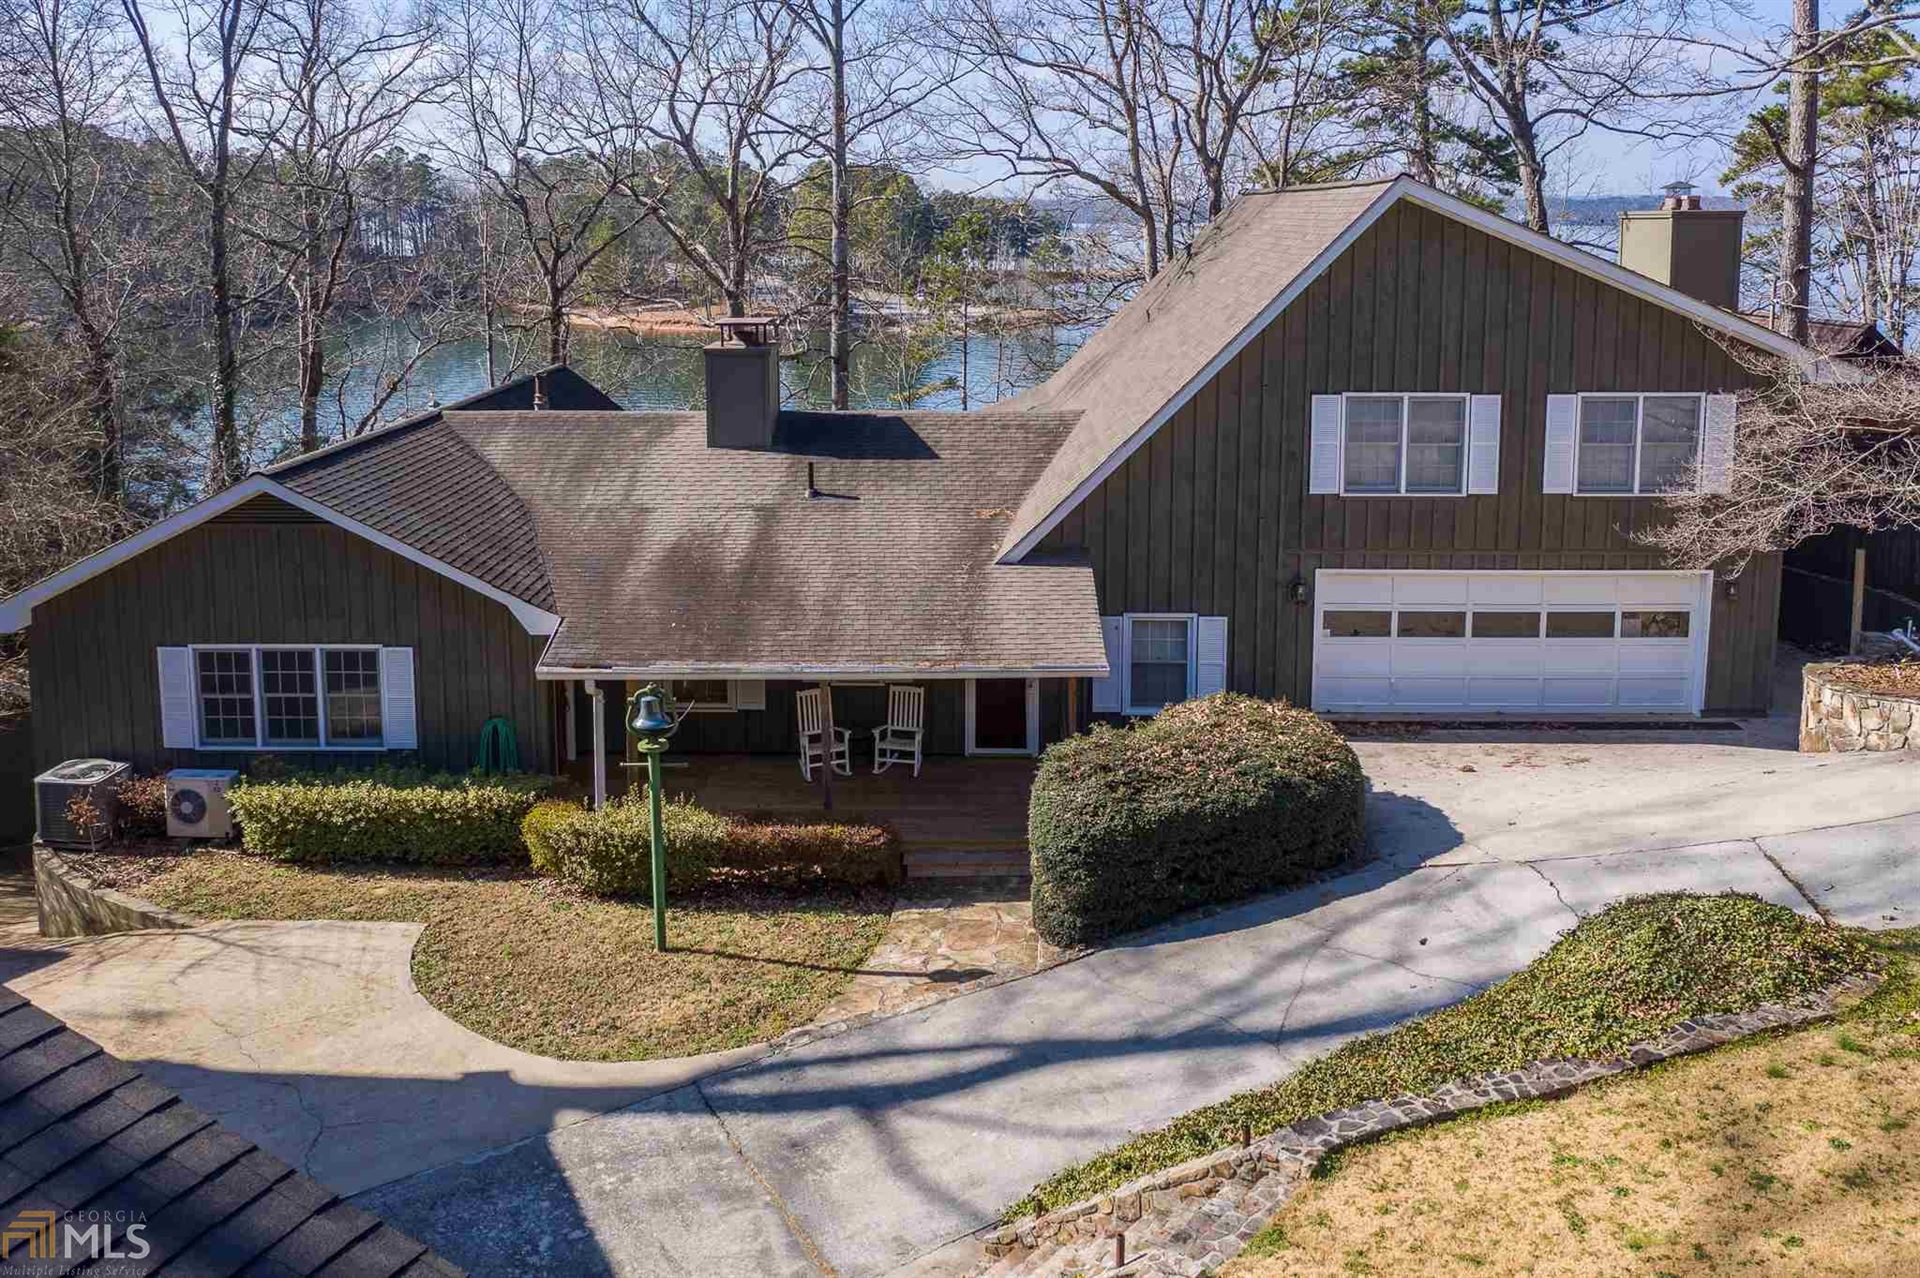 6141 North Point Dr, Flowery Branch, GA 30542 - #: 8929438